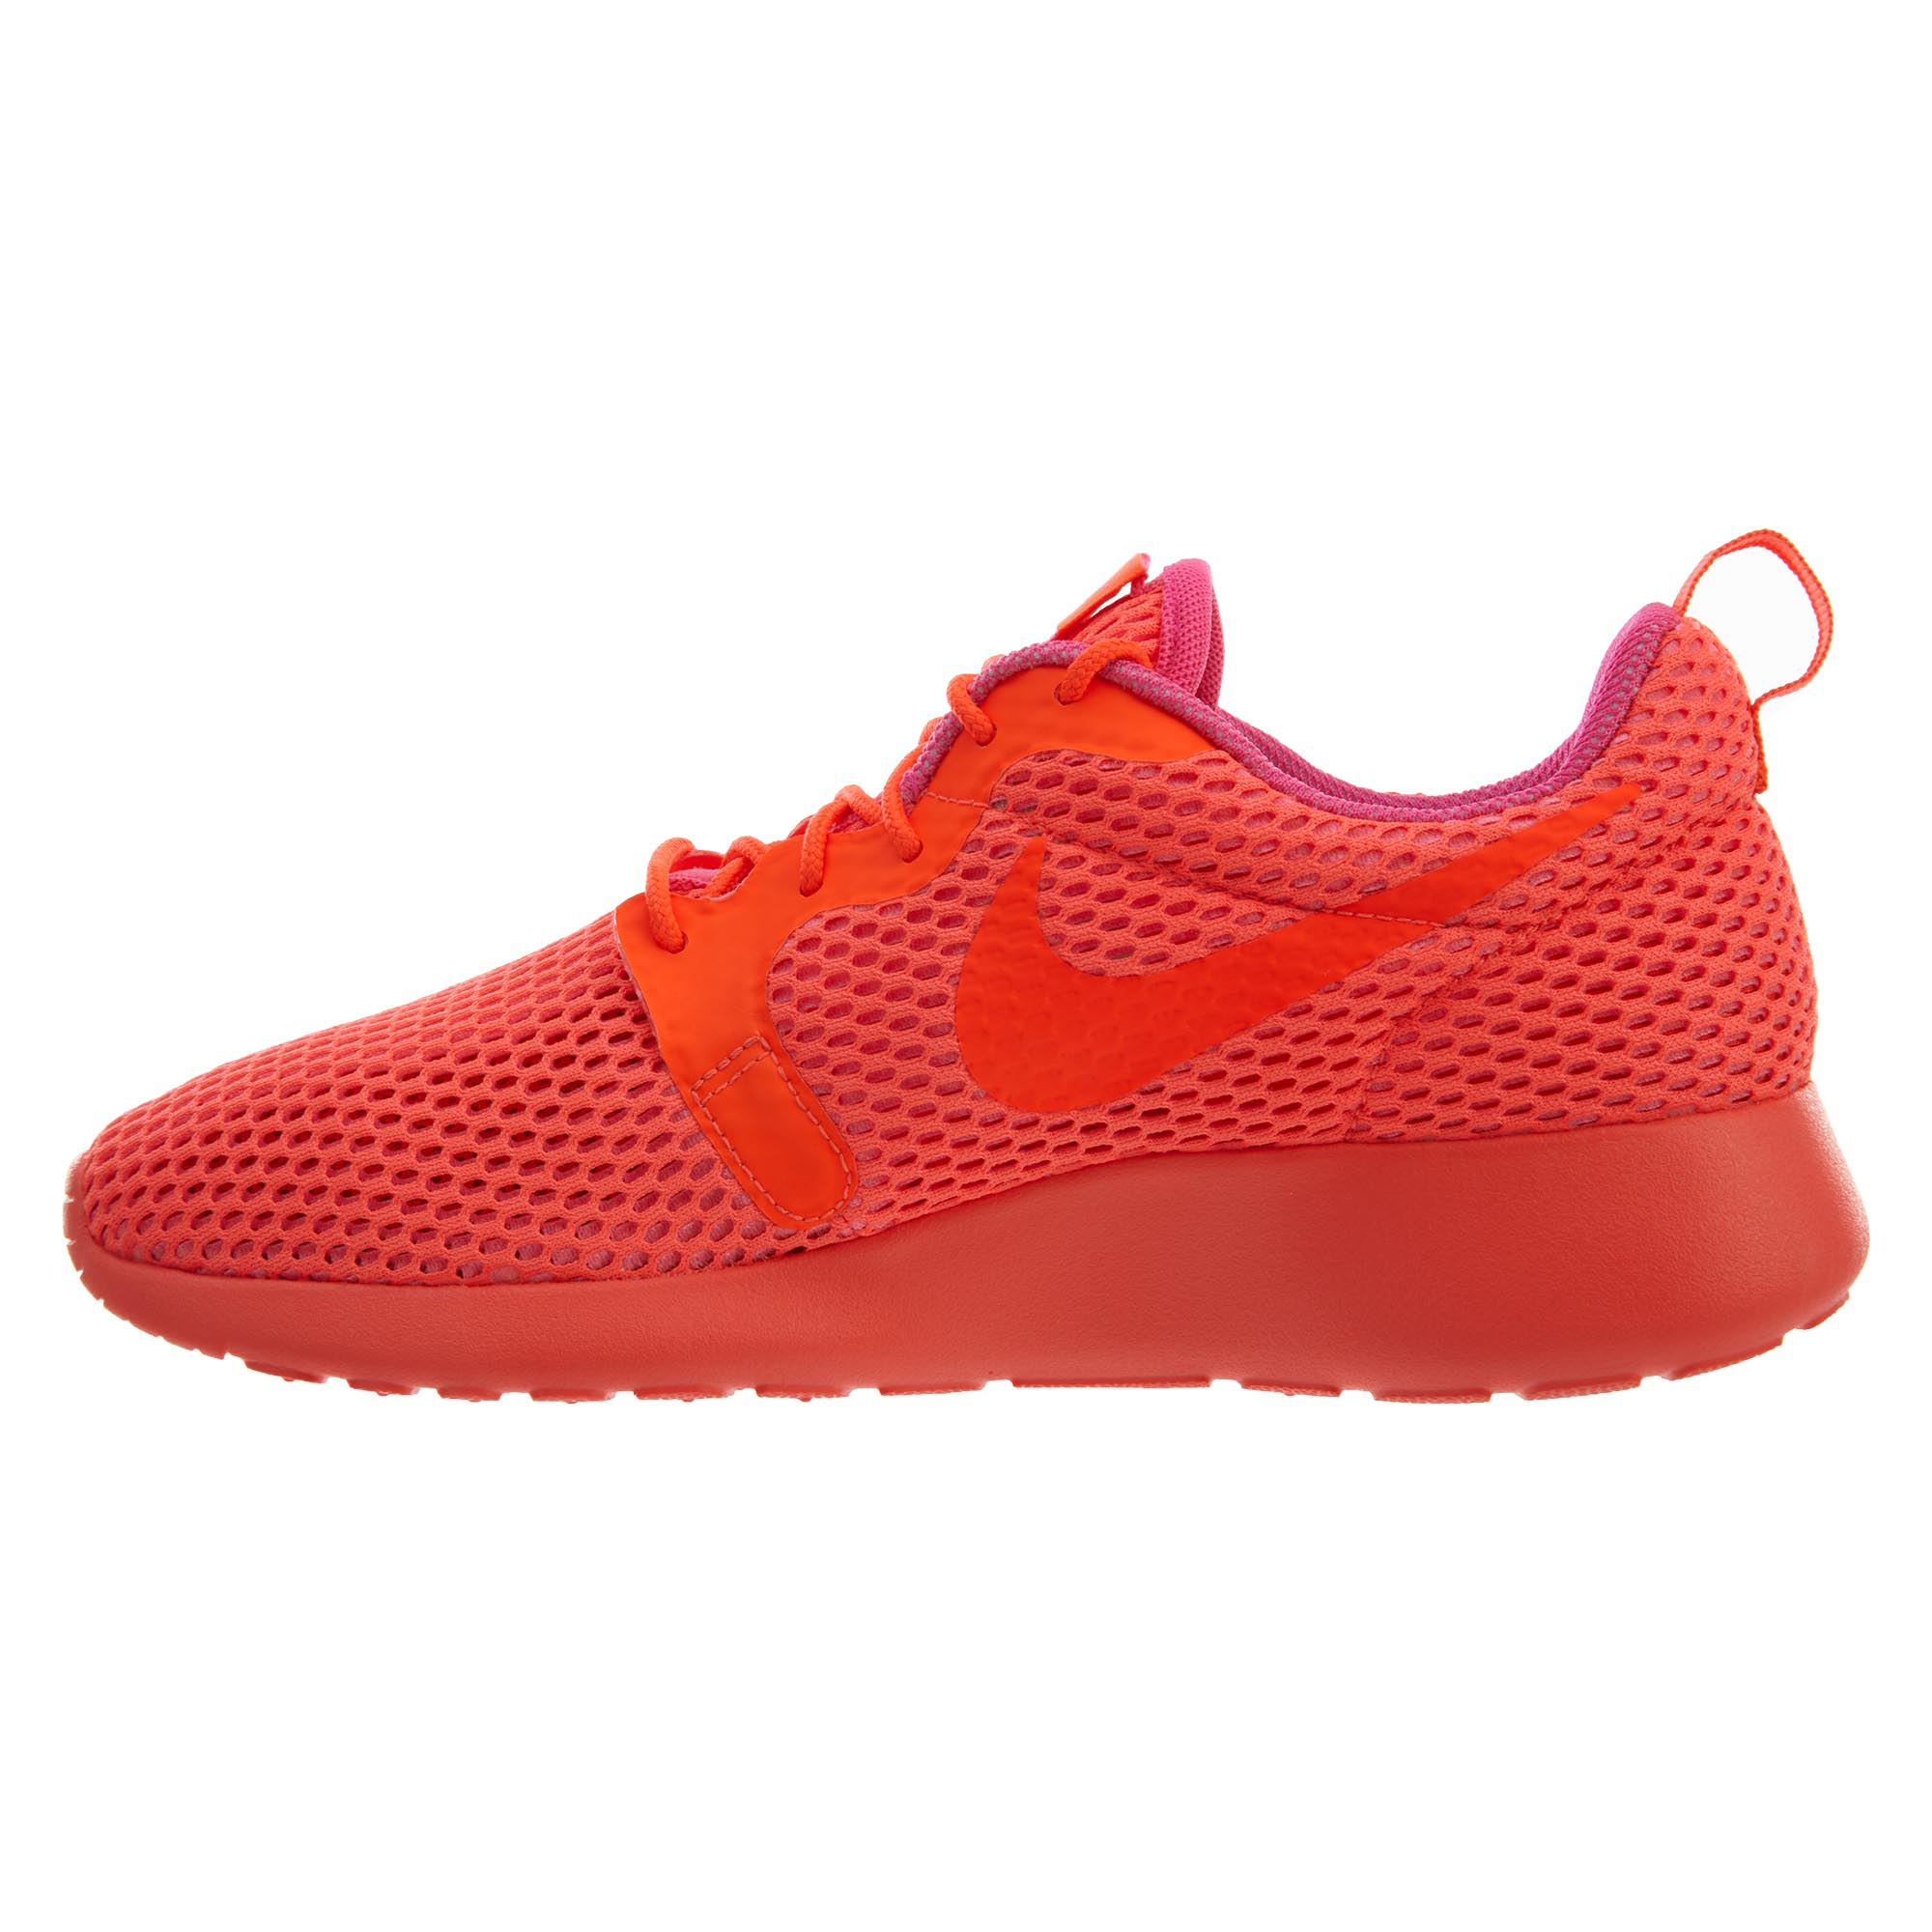 7f8971330e4ba Nike Womens Roshe One HYP BR Running Shoes 833826-800